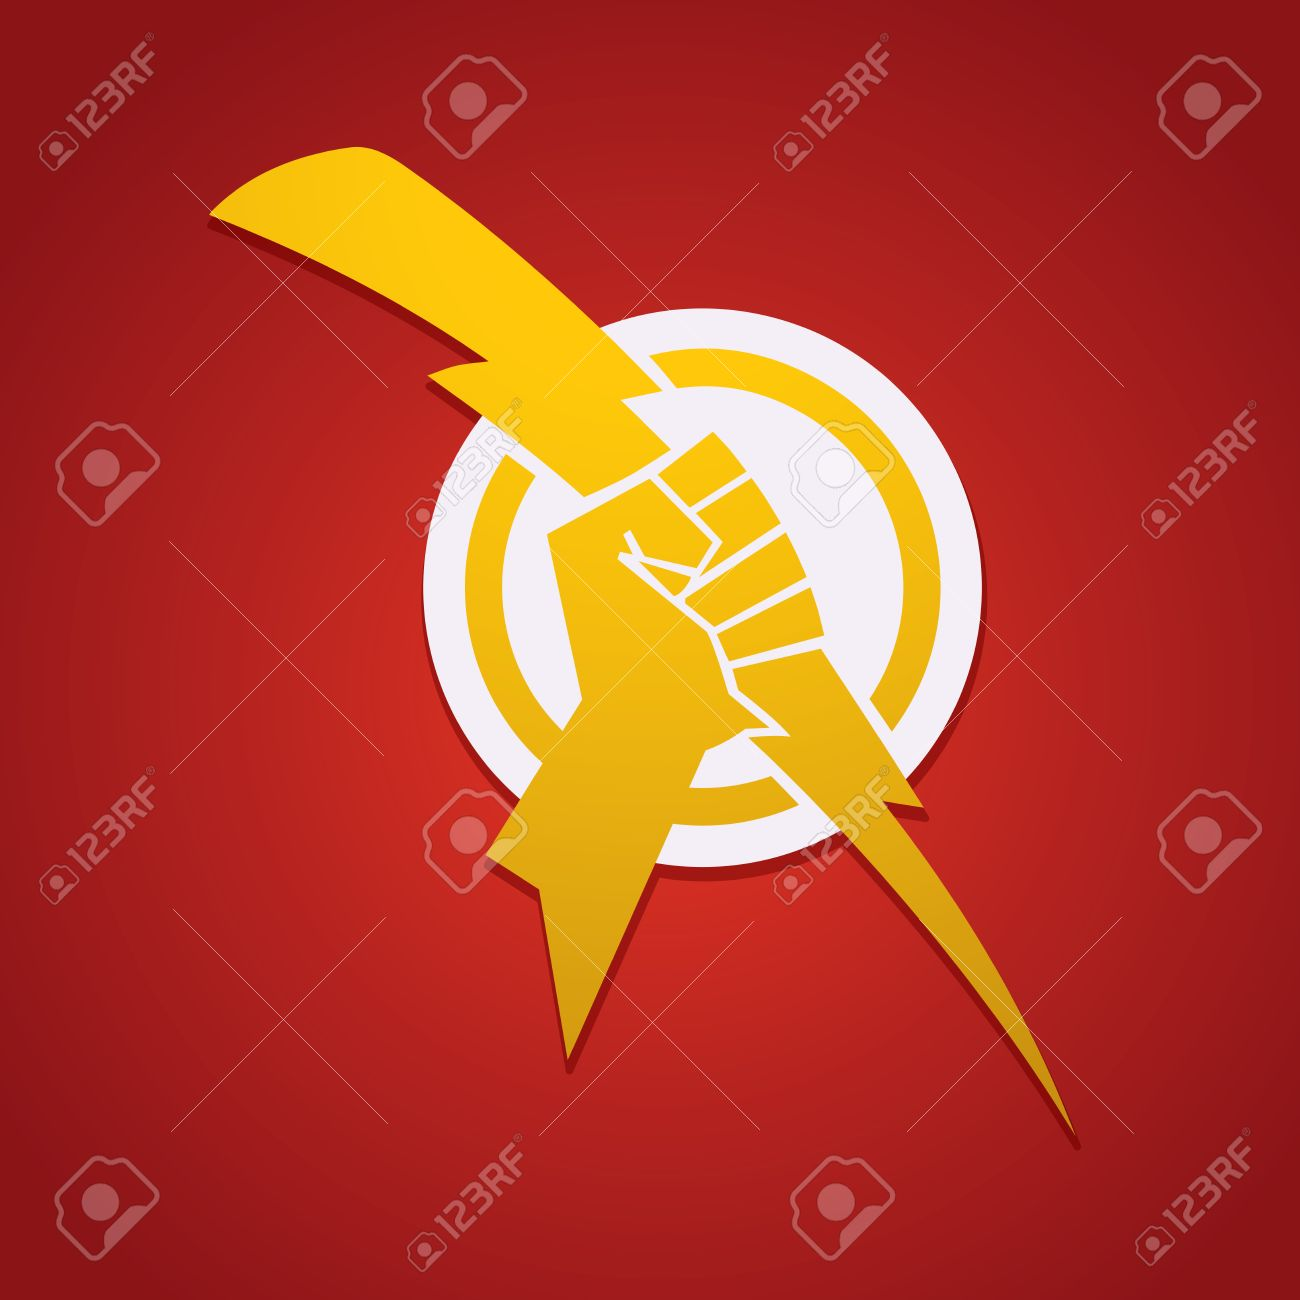 The hand of zeus holding thunderbolt royalty free cliparts the hand of zeus holding thunderbolt stock vector 69425099 buycottarizona Images